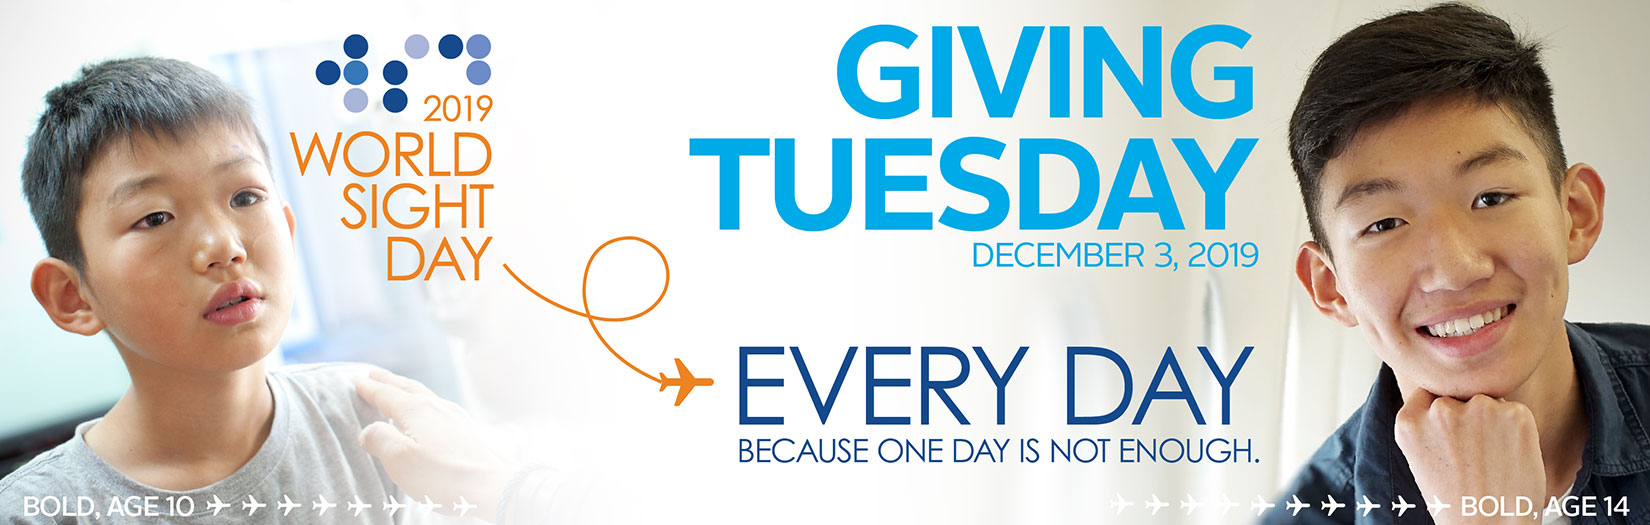 World Site Day - Giving Tuesday Banner